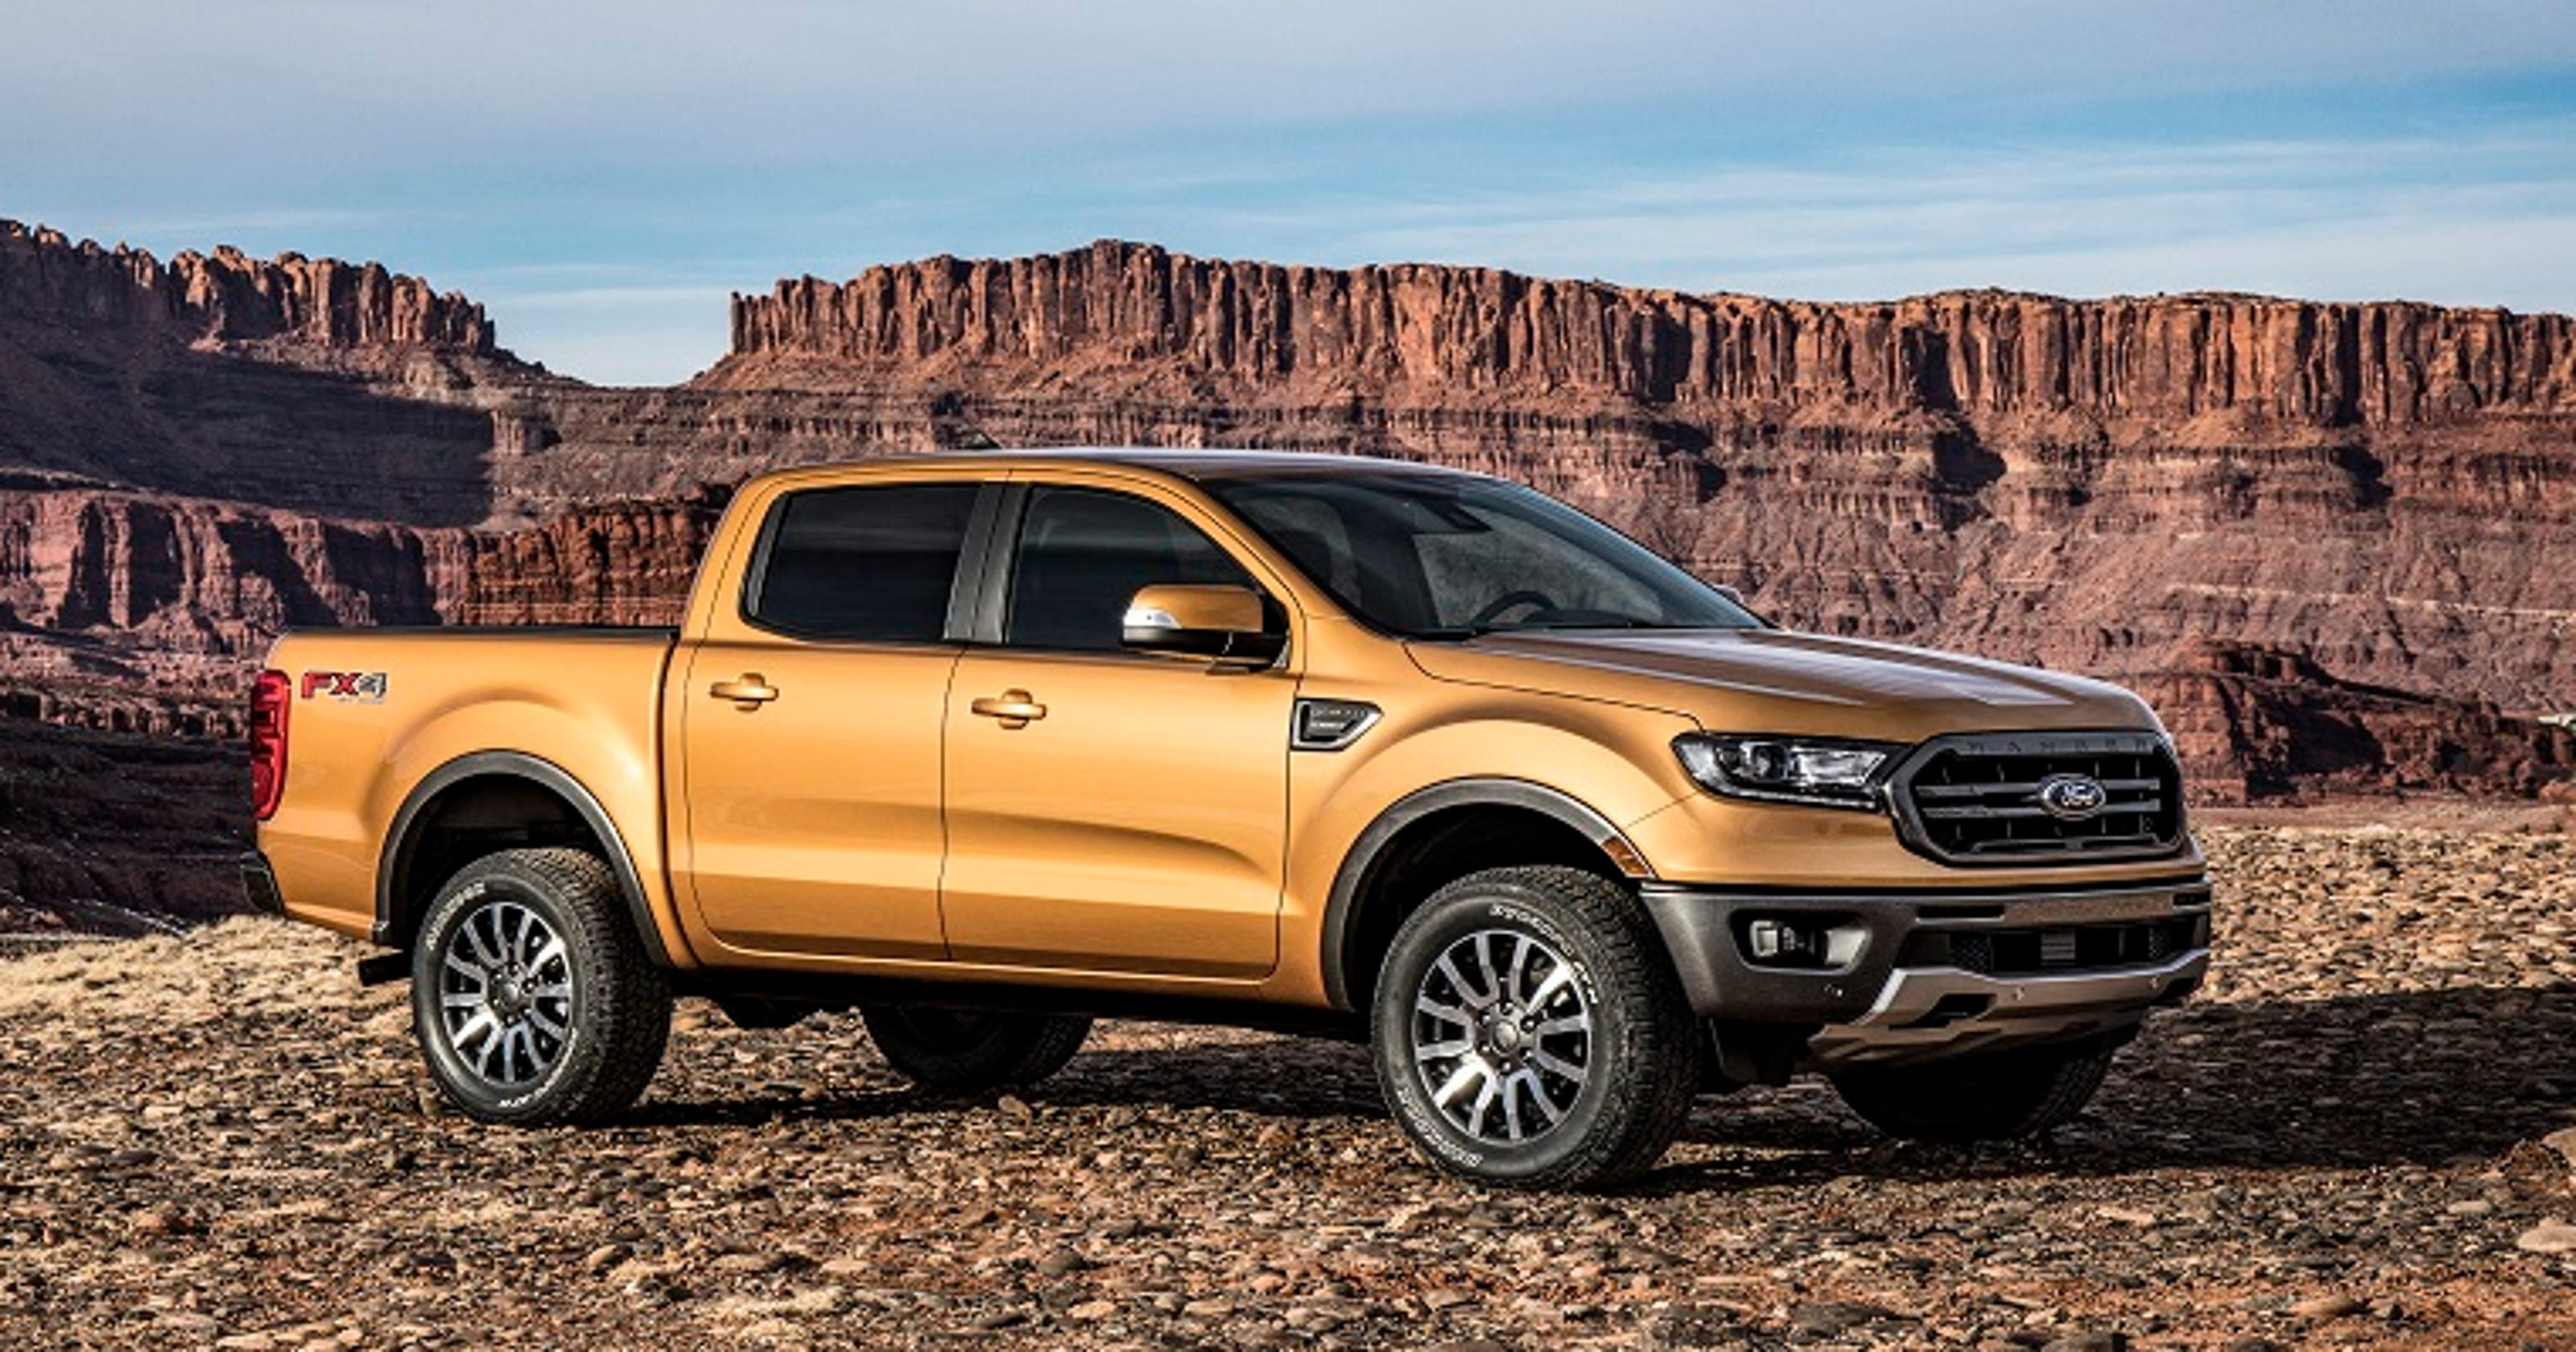 Ford Shows New Ranger Midsize Pickup Ahead Of Detroit Auto Show